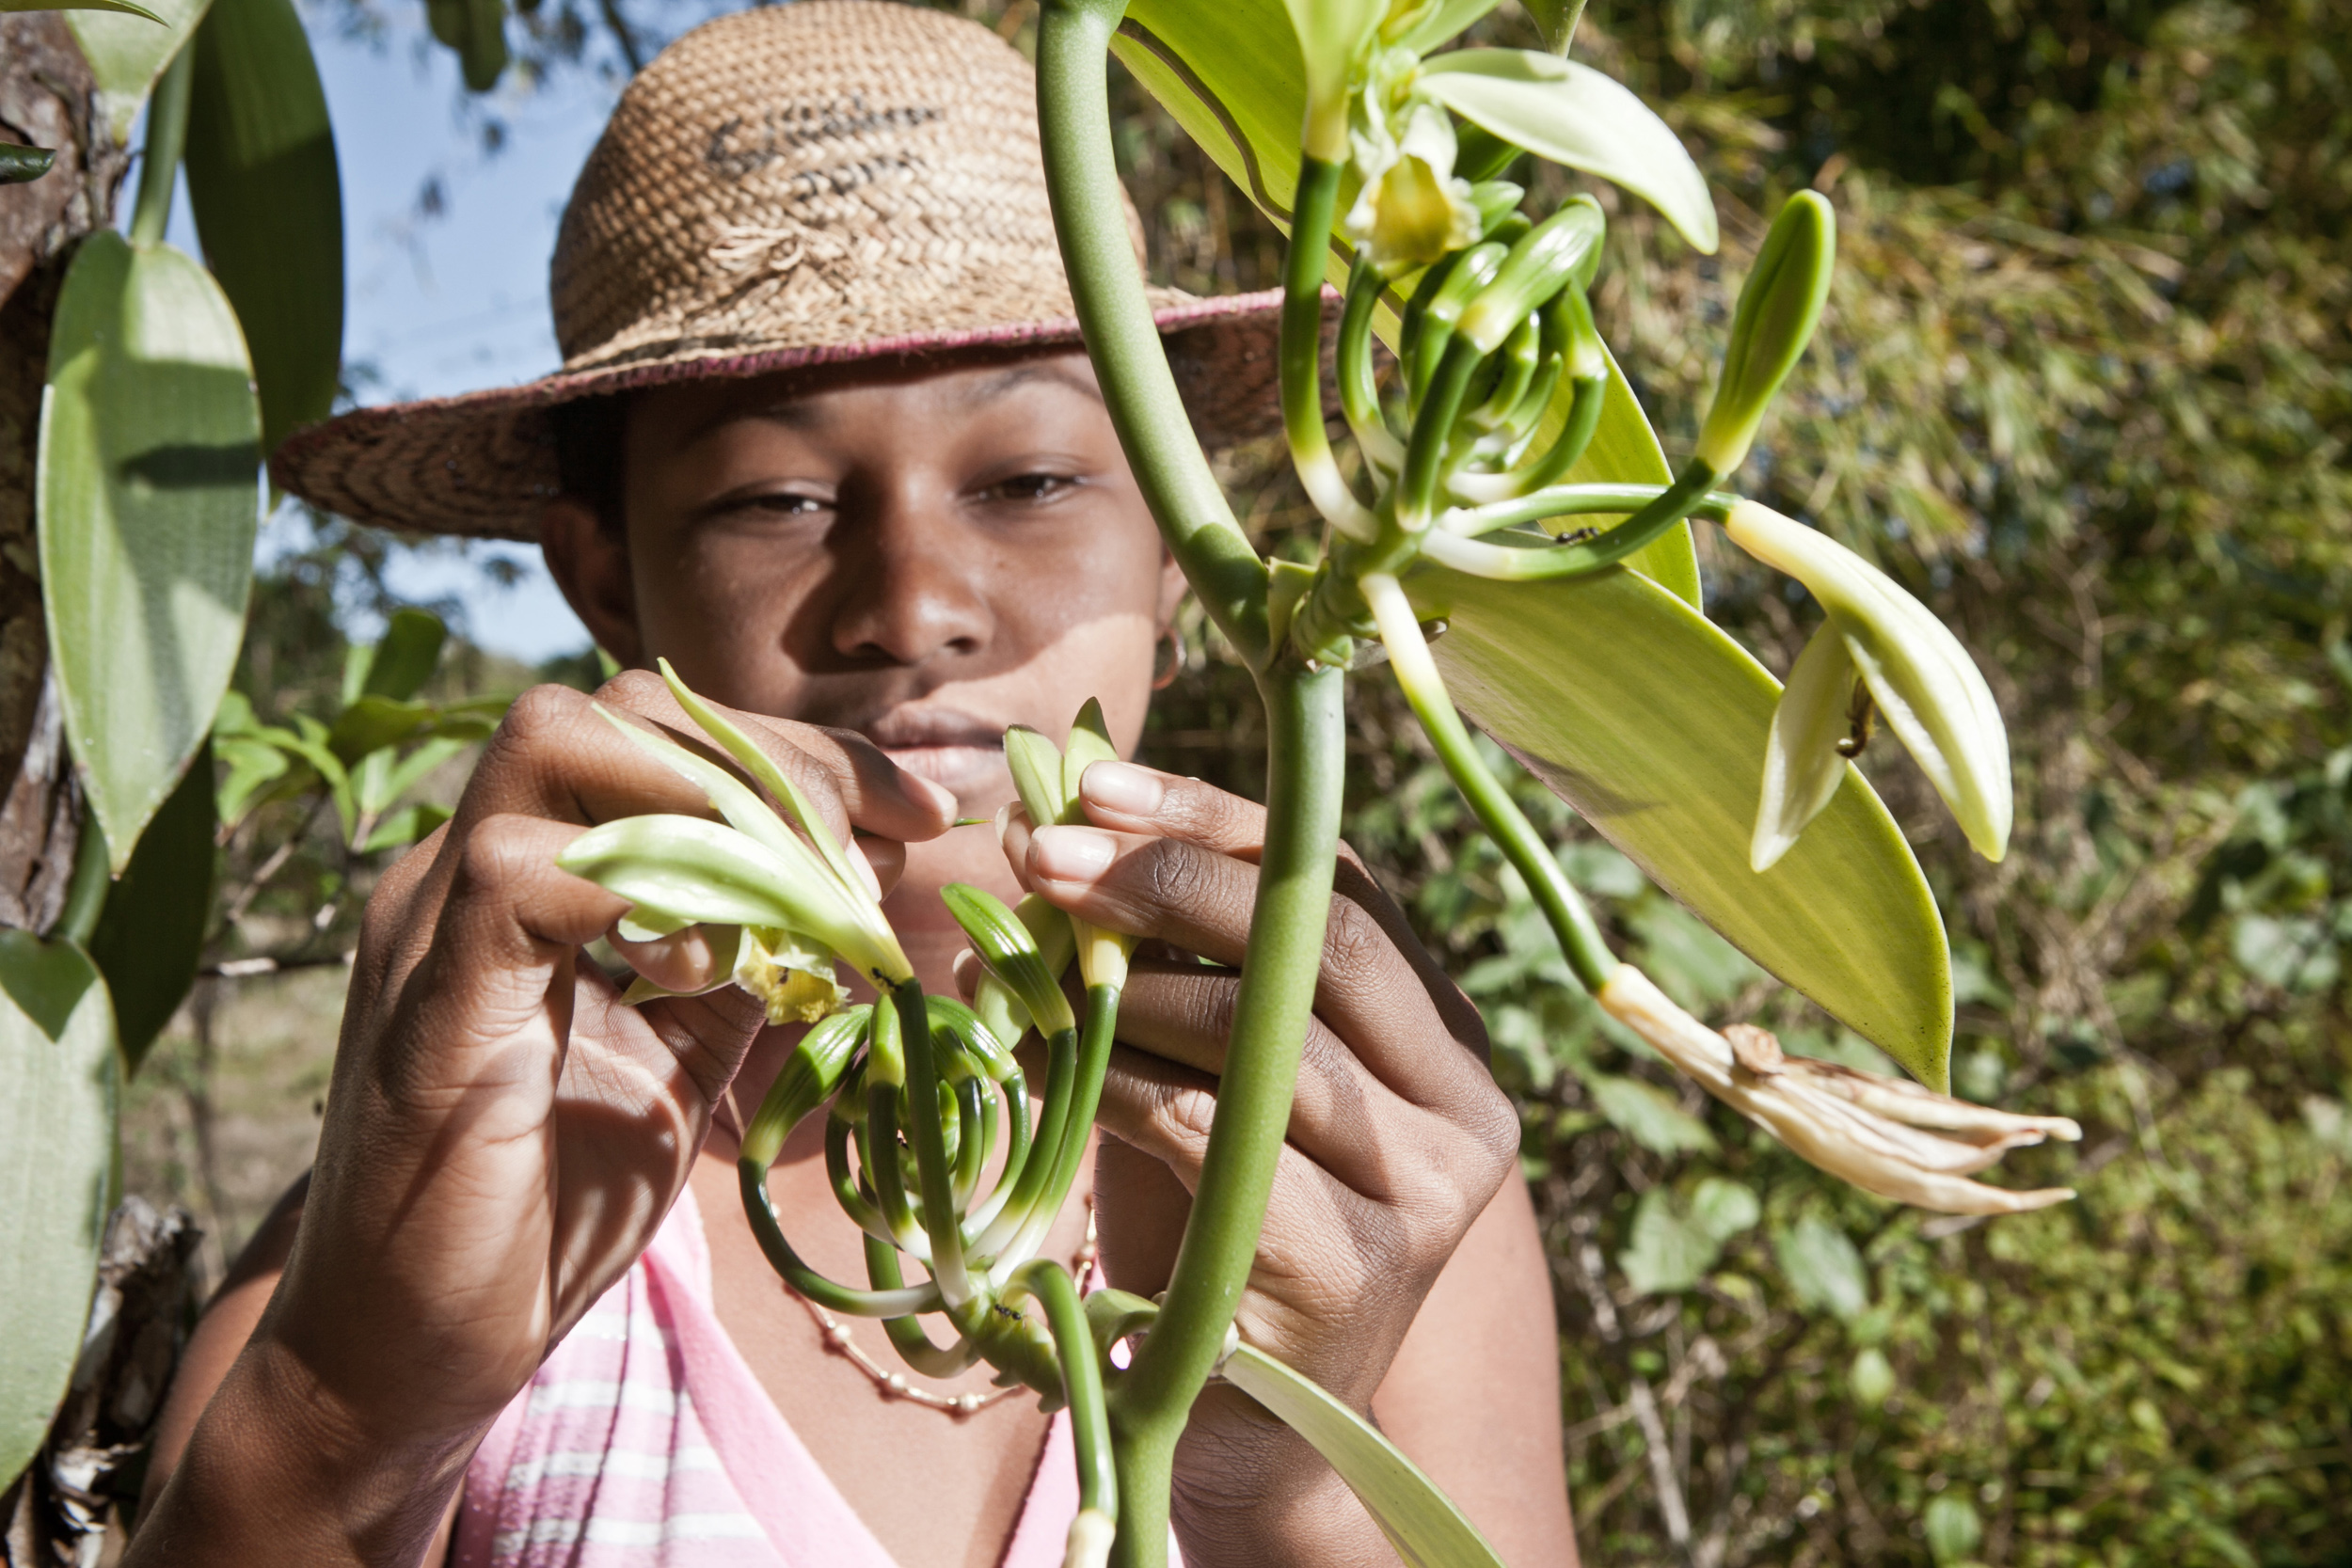 A young worker in Karela inseminates an orchid flower to produce green vanilla.